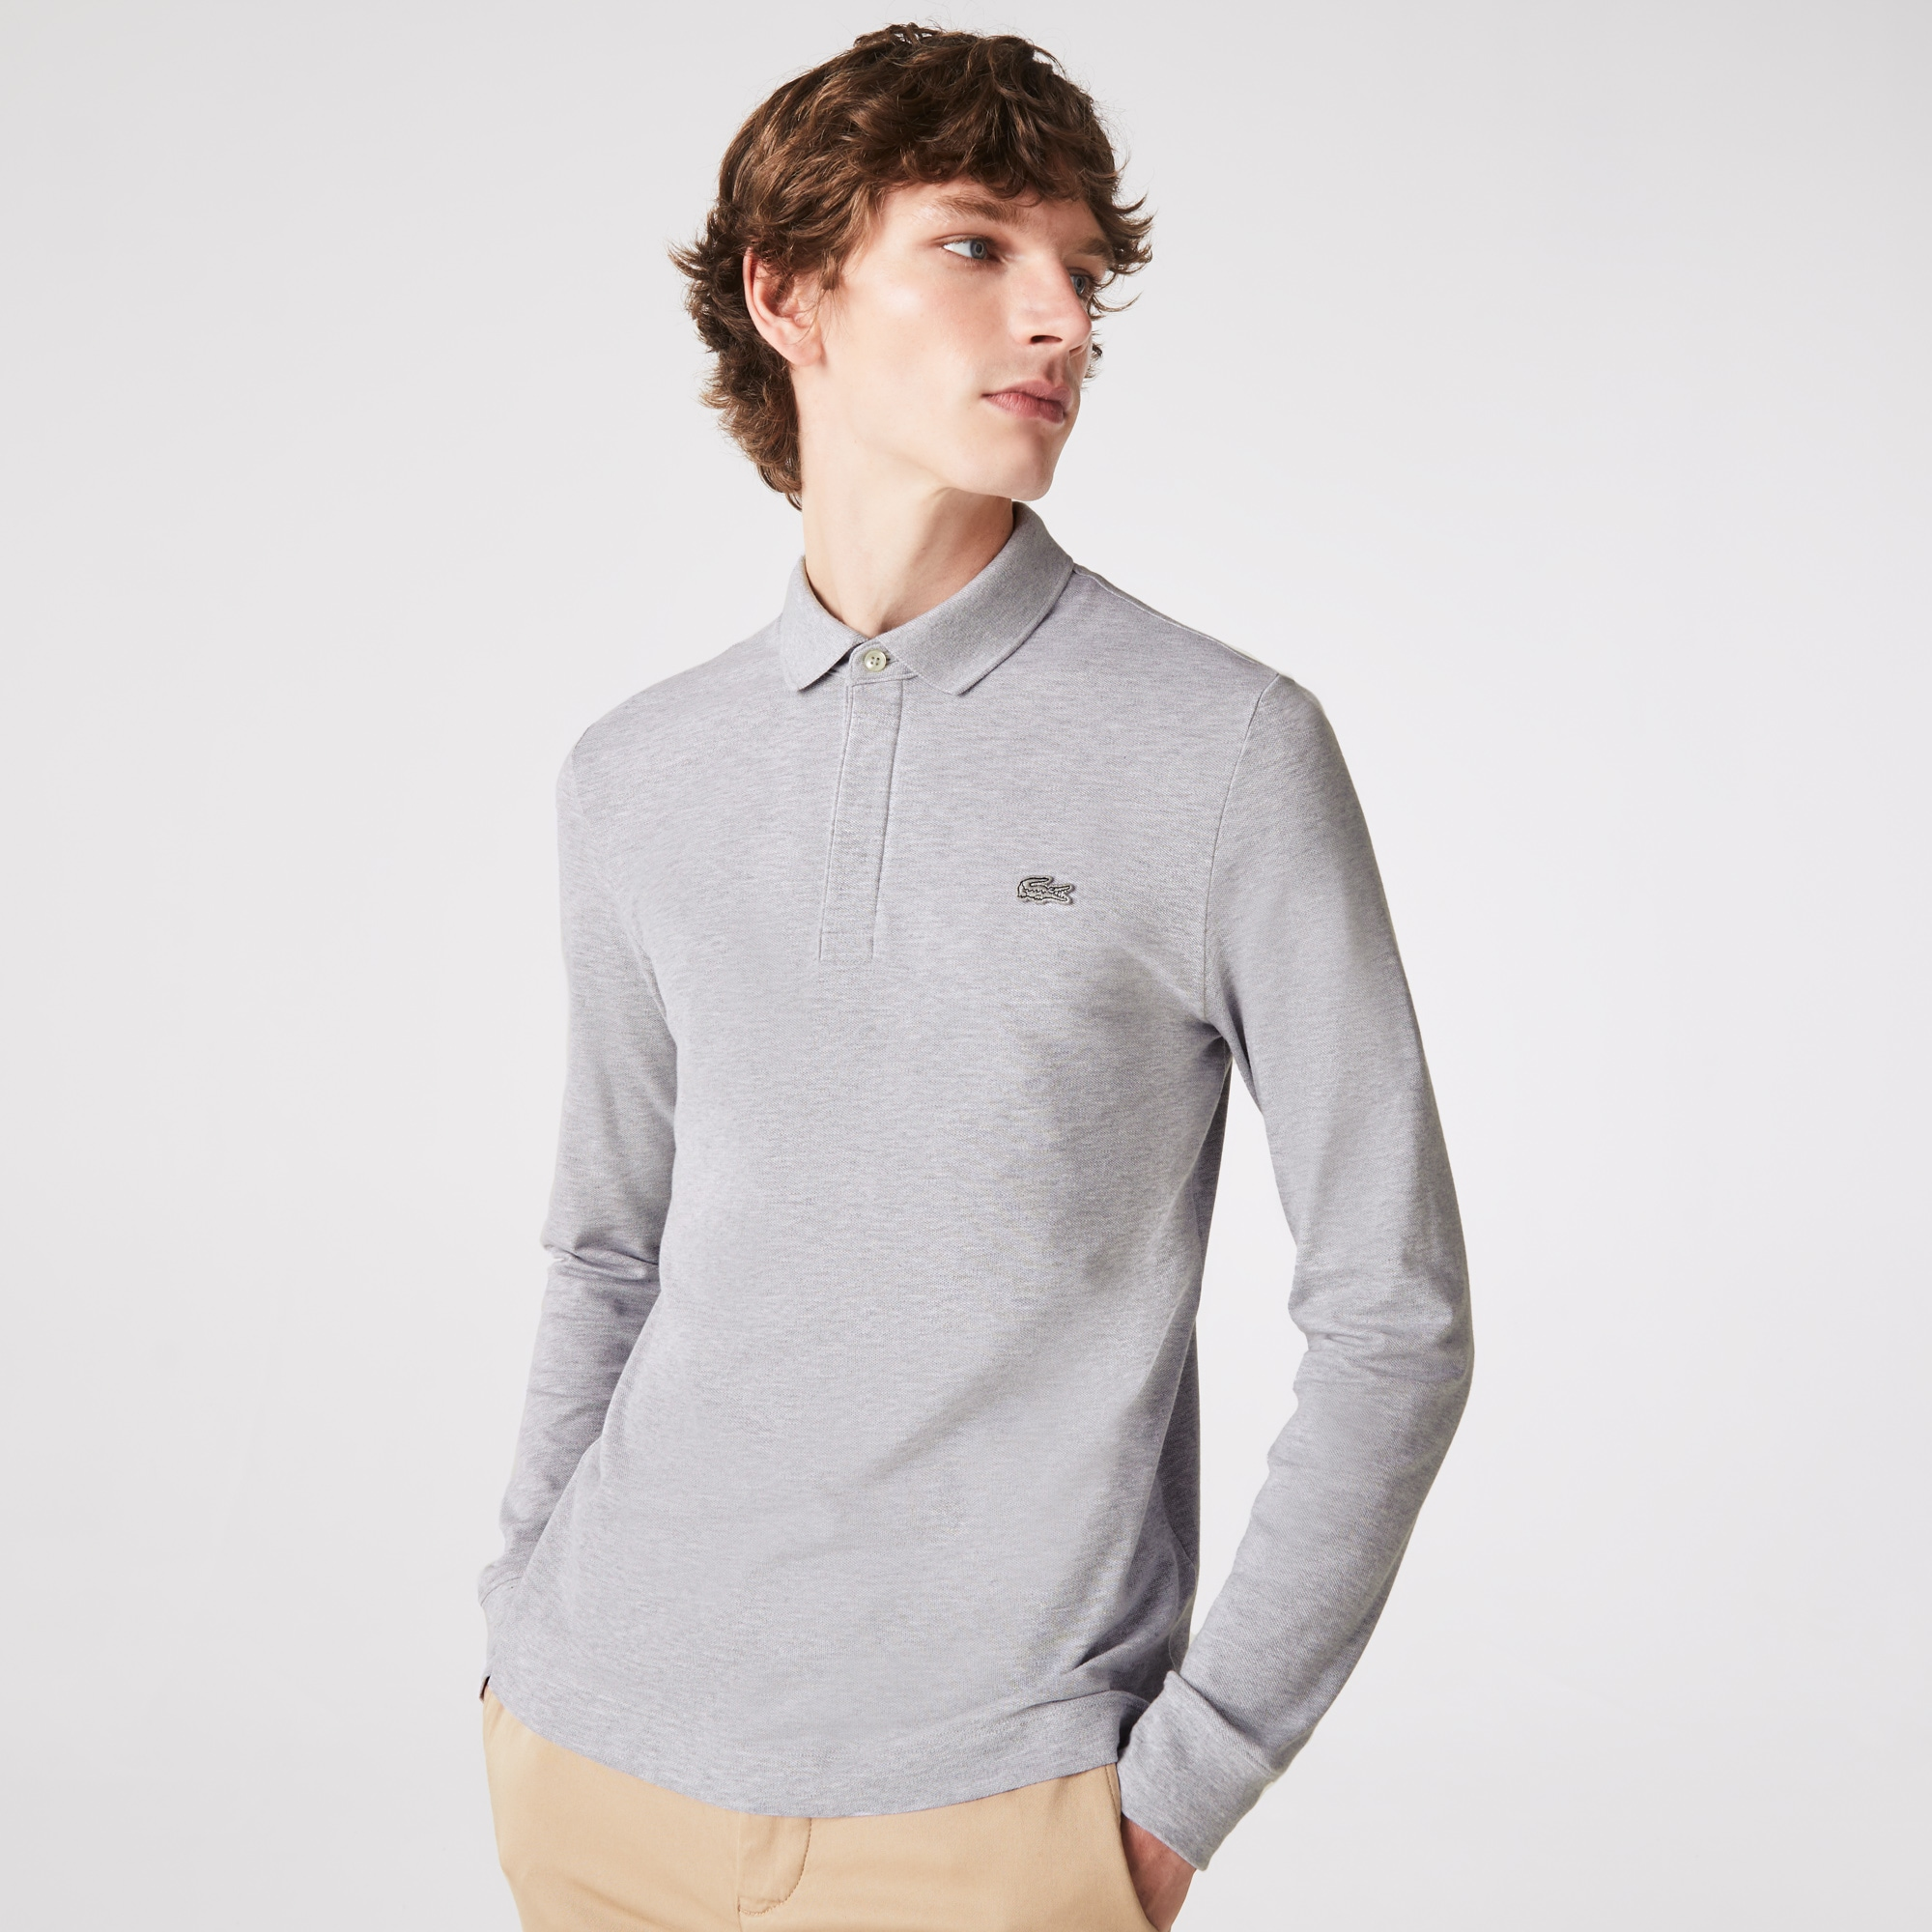 Paris Polo Regular Fit Lacoste manches longues en coton stretch